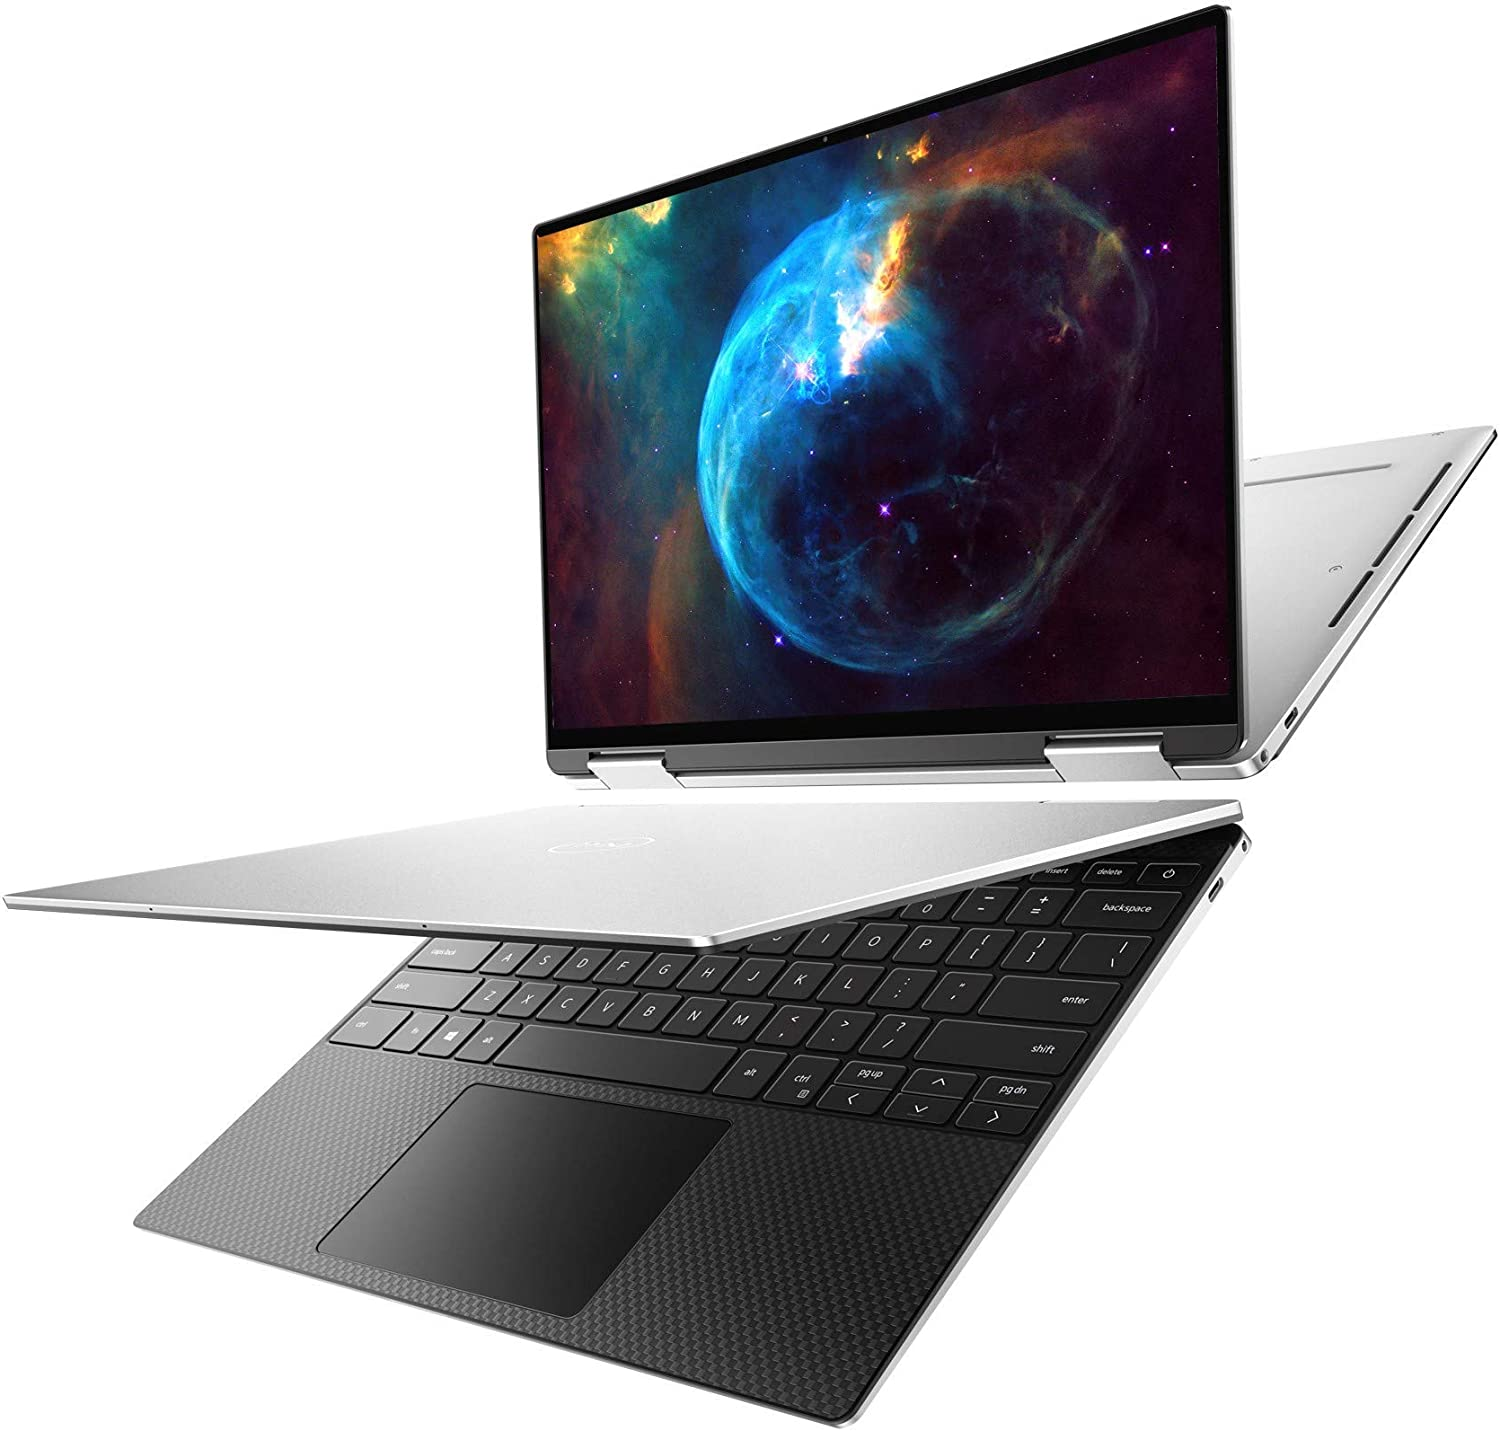 Dell XPS 13 7390 2-in-1 Convertible 13.4-inch FHD InfinityEdge Touchscreen Laptop (Silver) Intel Core i7-1065G7 10th Gen, 32GB RAM, 512GB SSD, Windows 10 Home (XPS7390-7954SLV-PUS) (Renewed)